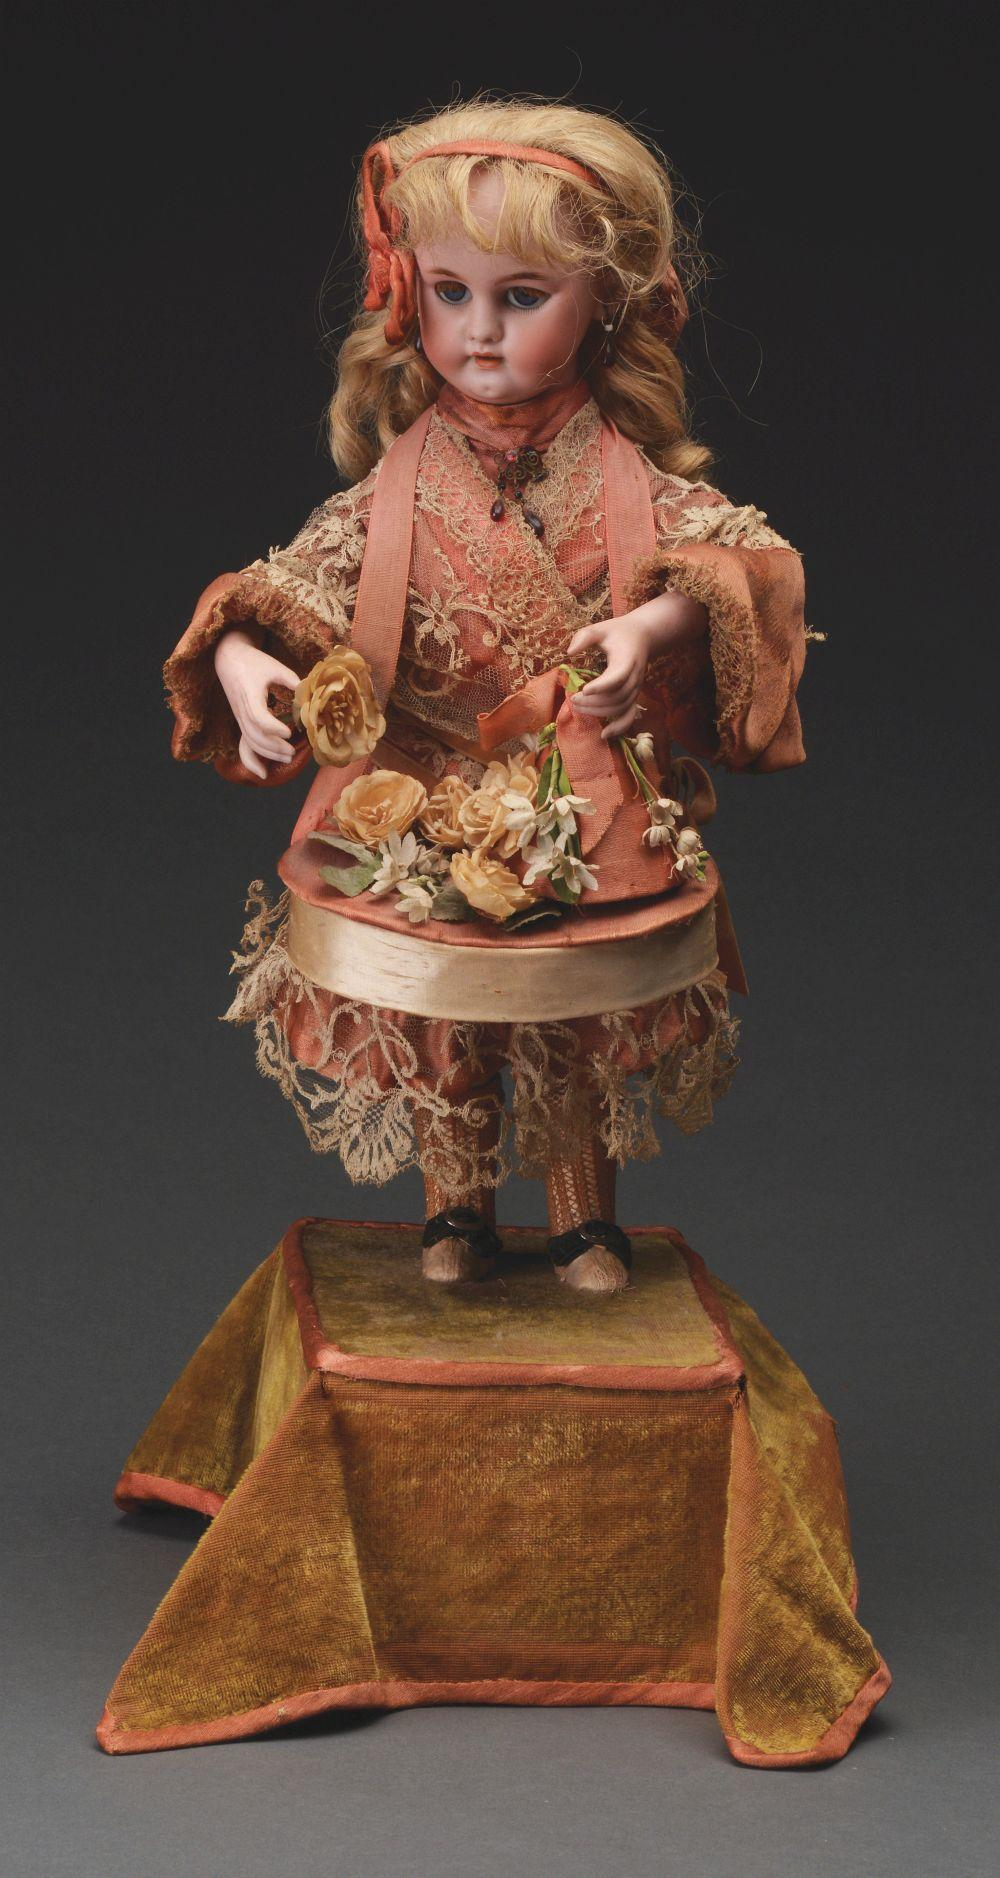 Lot 2057: French Musical Automaton Doll in Display Case.